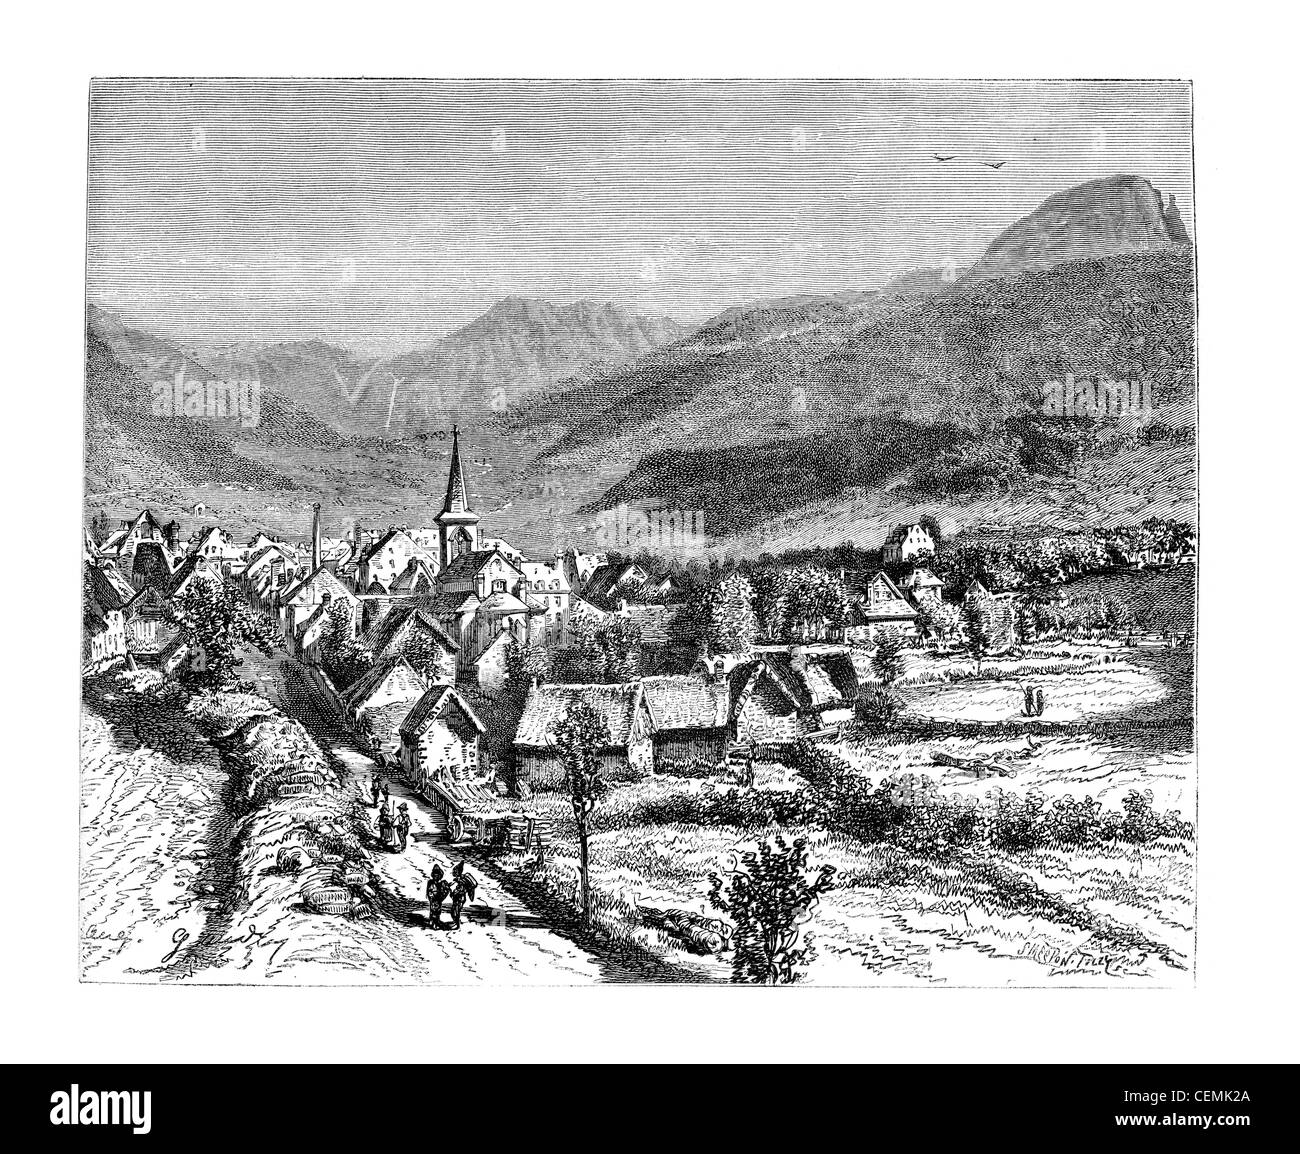 Town of Mont-Dore-les-Bains, vintage engraved illustration. Magasin Pittoresque 1875. - Stock Image